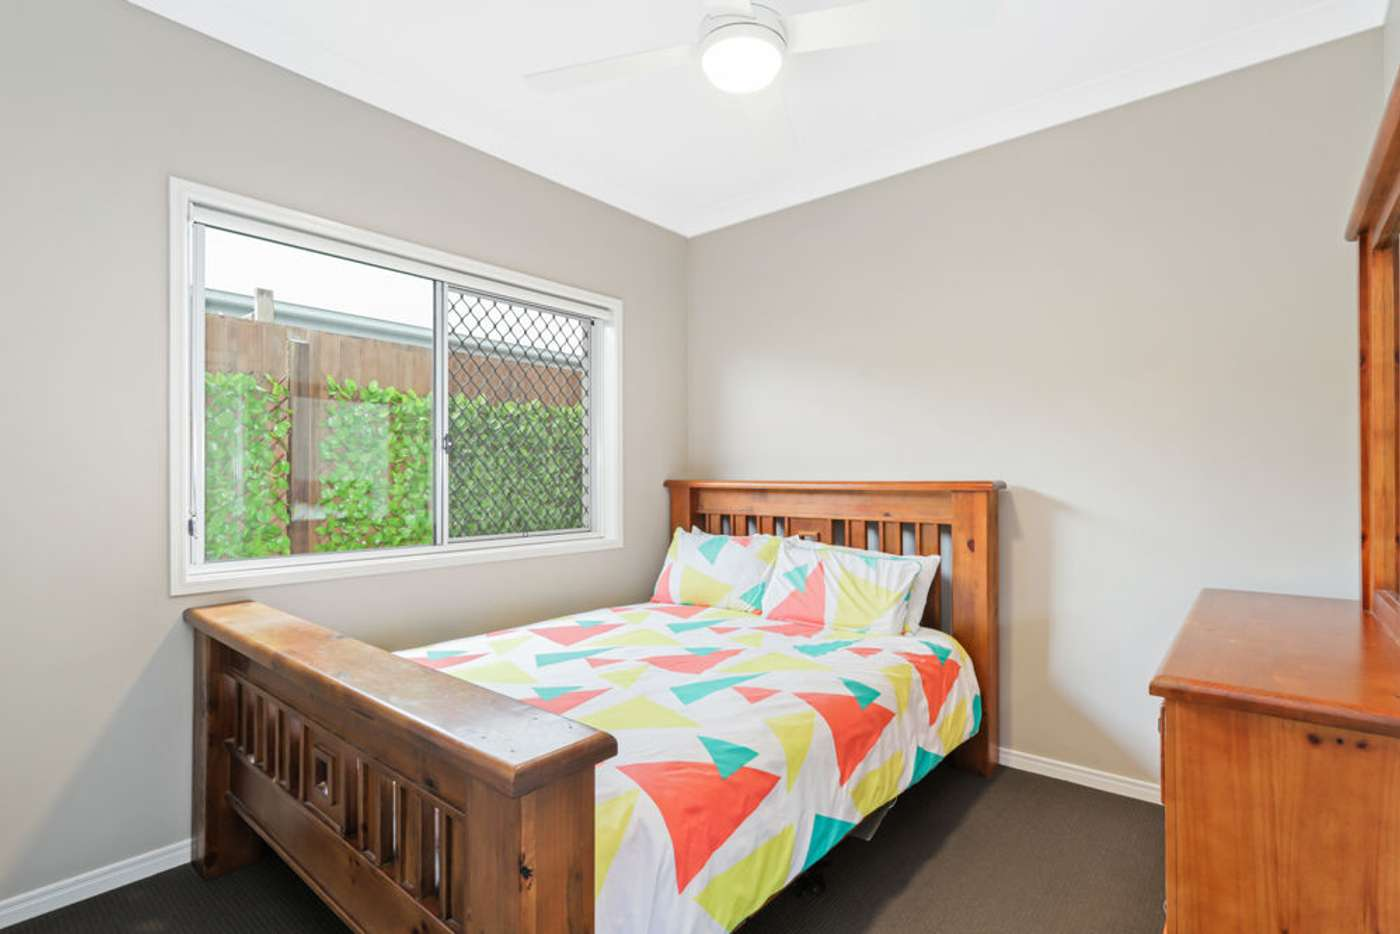 Fifth view of Homely house listing, 6 Sunday Court, Burpengary East QLD 4505